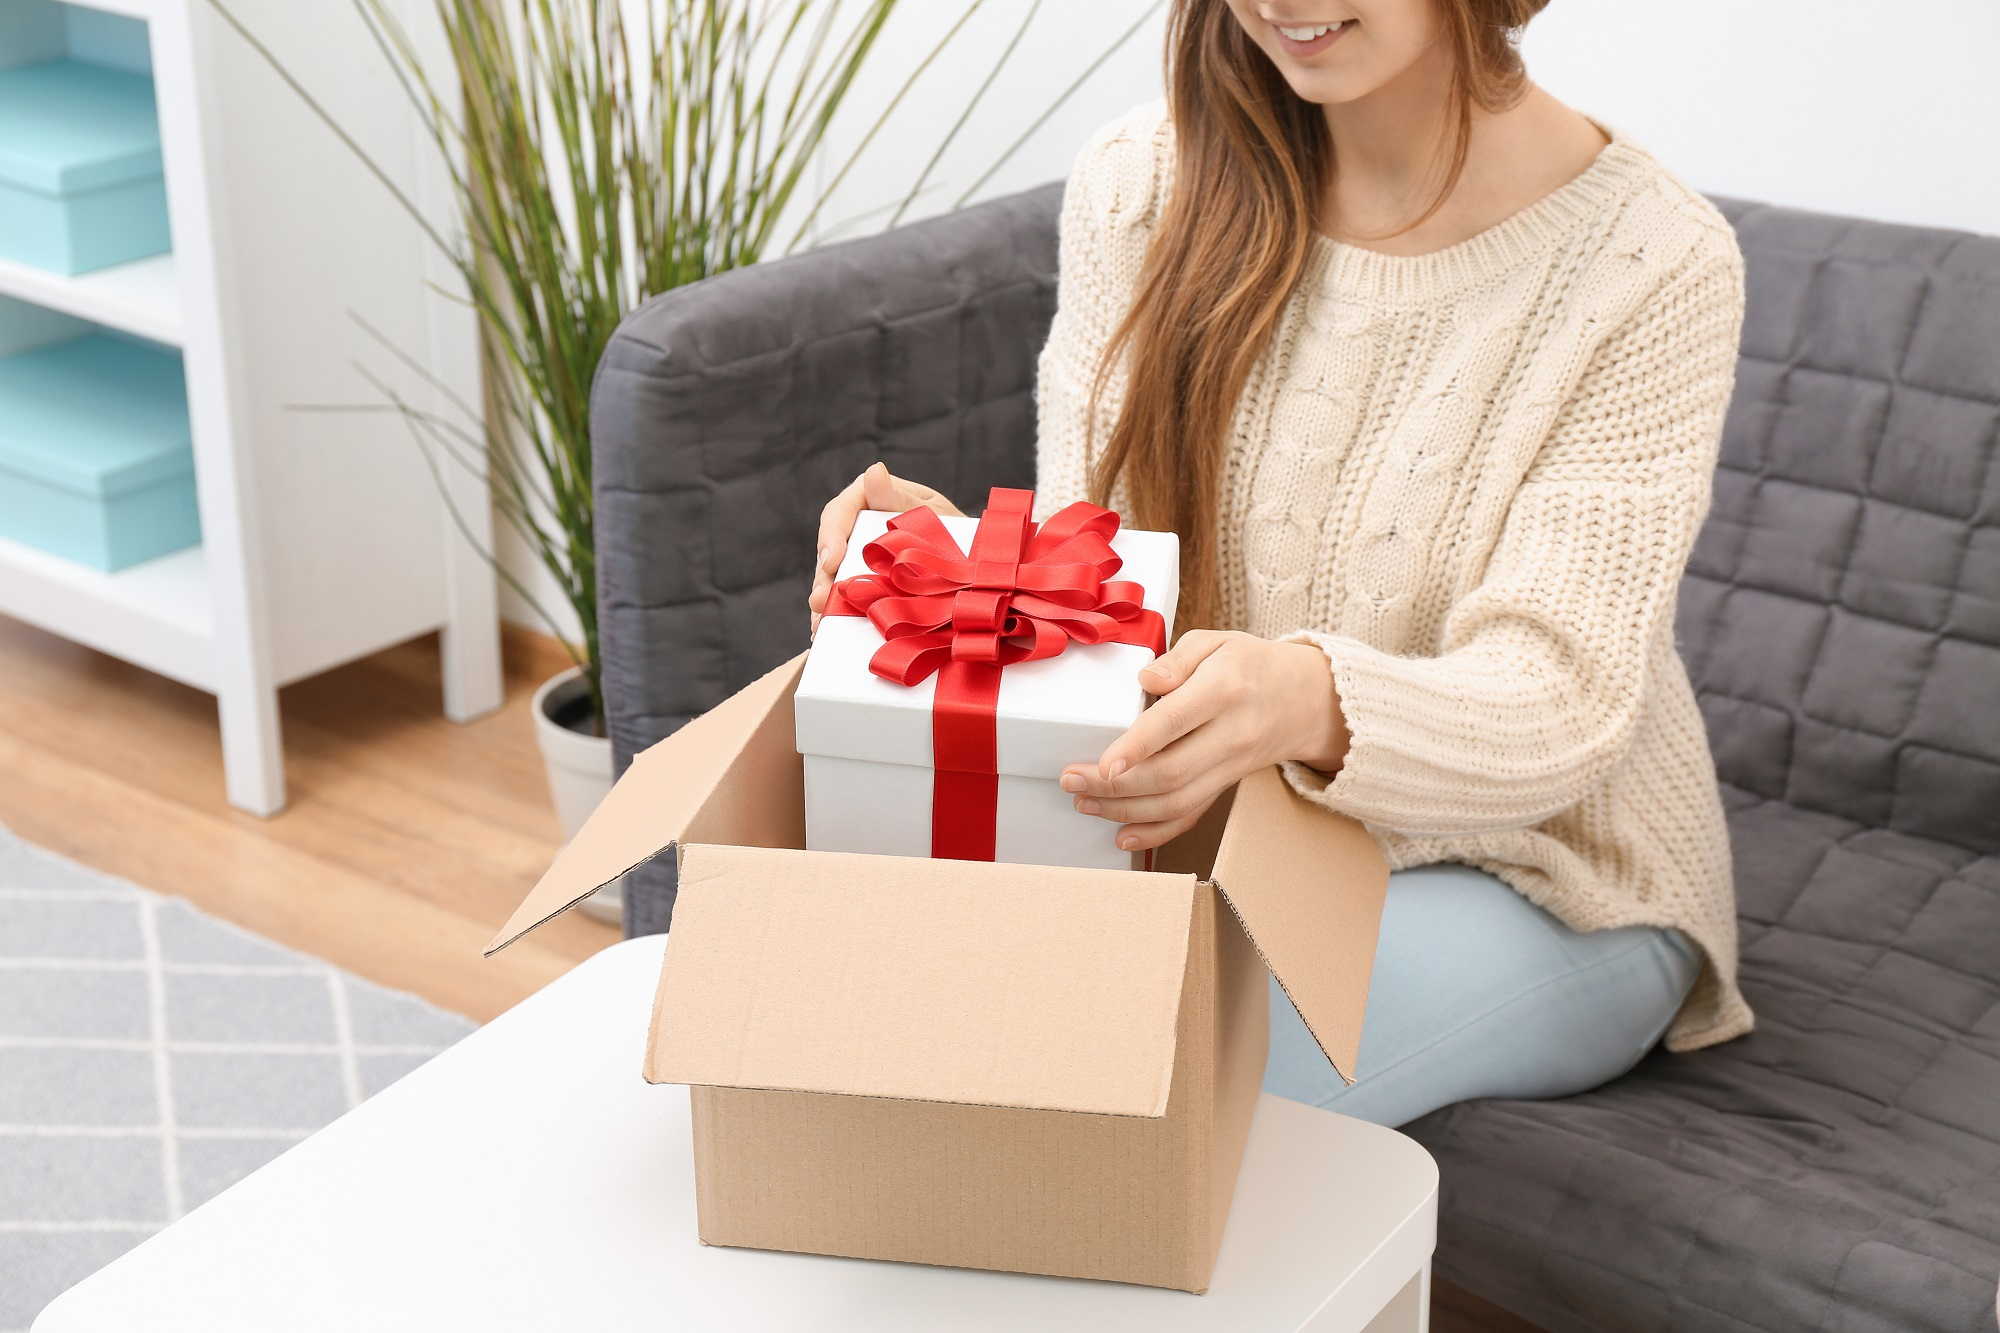 Choose gift boxes